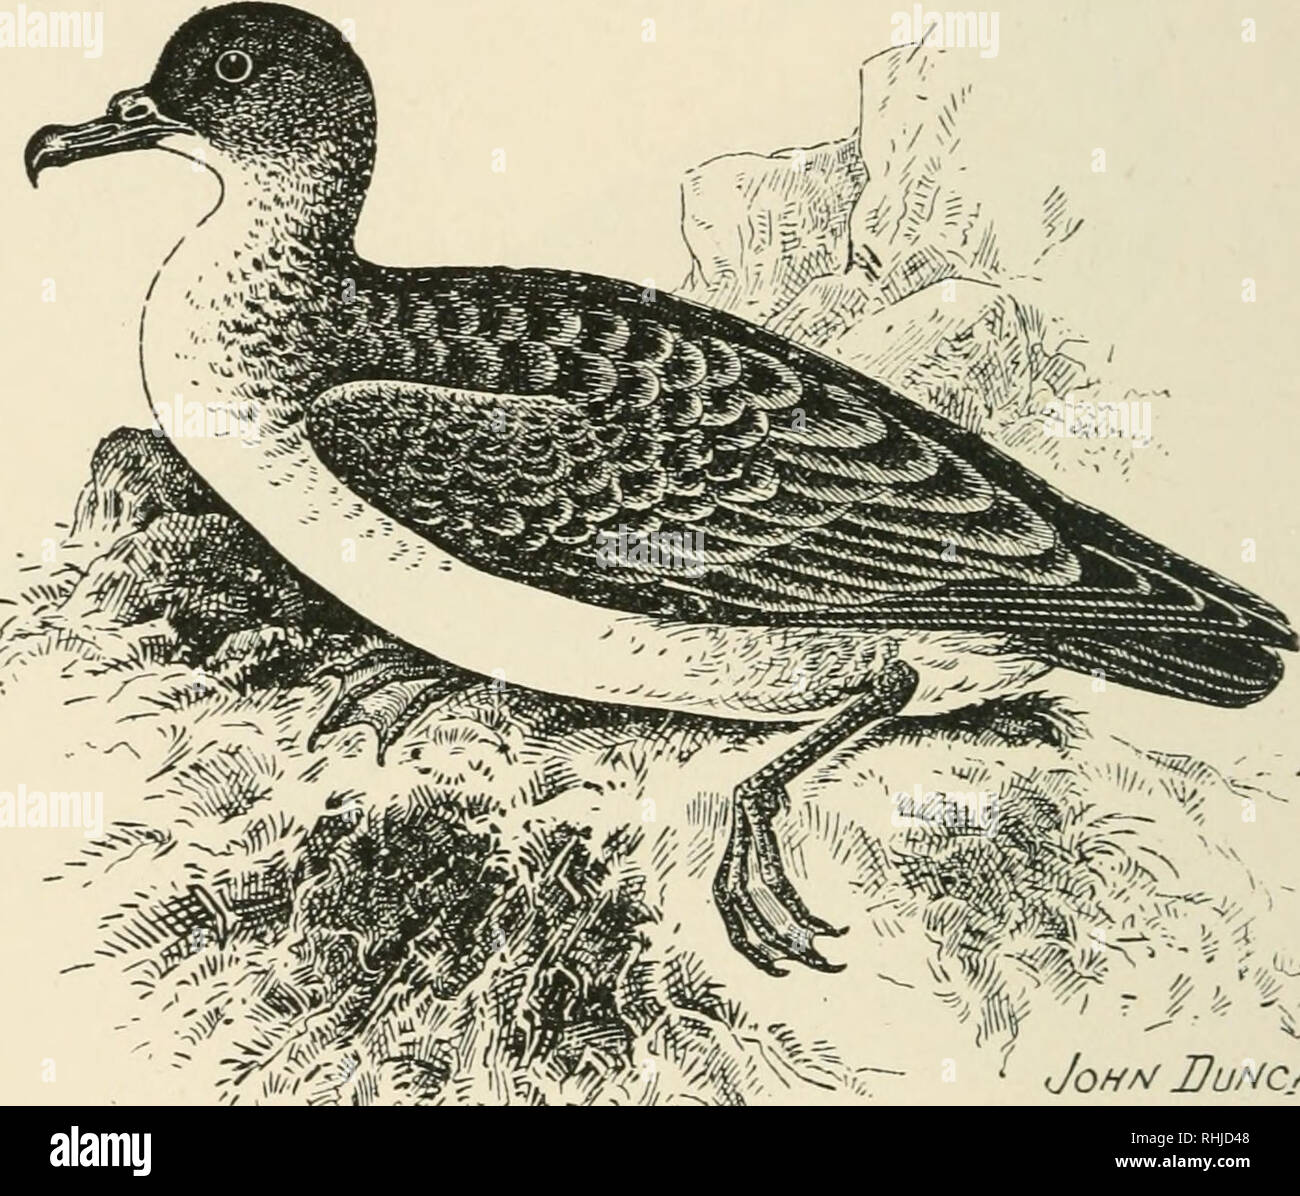 . Birds of the British Isles. Birds -- Great Britain; Birds -- Ireland. 404 BIRDS OF THE BRITISH ISLES. 2)u6ft^ Sbearwater*. The Dusky Shearwater {Fiiffinus obscums, Gmelin) is an exceedingly rare abnormal spring migrant to the British Islands, and inhabits the Tropic Seas. This Shearwater in adult plumage closely resembles Puffinus anglorum in colouration, but is less in size, and the upper parts are darker. Length, about eleven inches.. Please note that these images are extracted from scanned page images that may have been digitally enhanced for readability - coloration and appearance of the - Stock Image